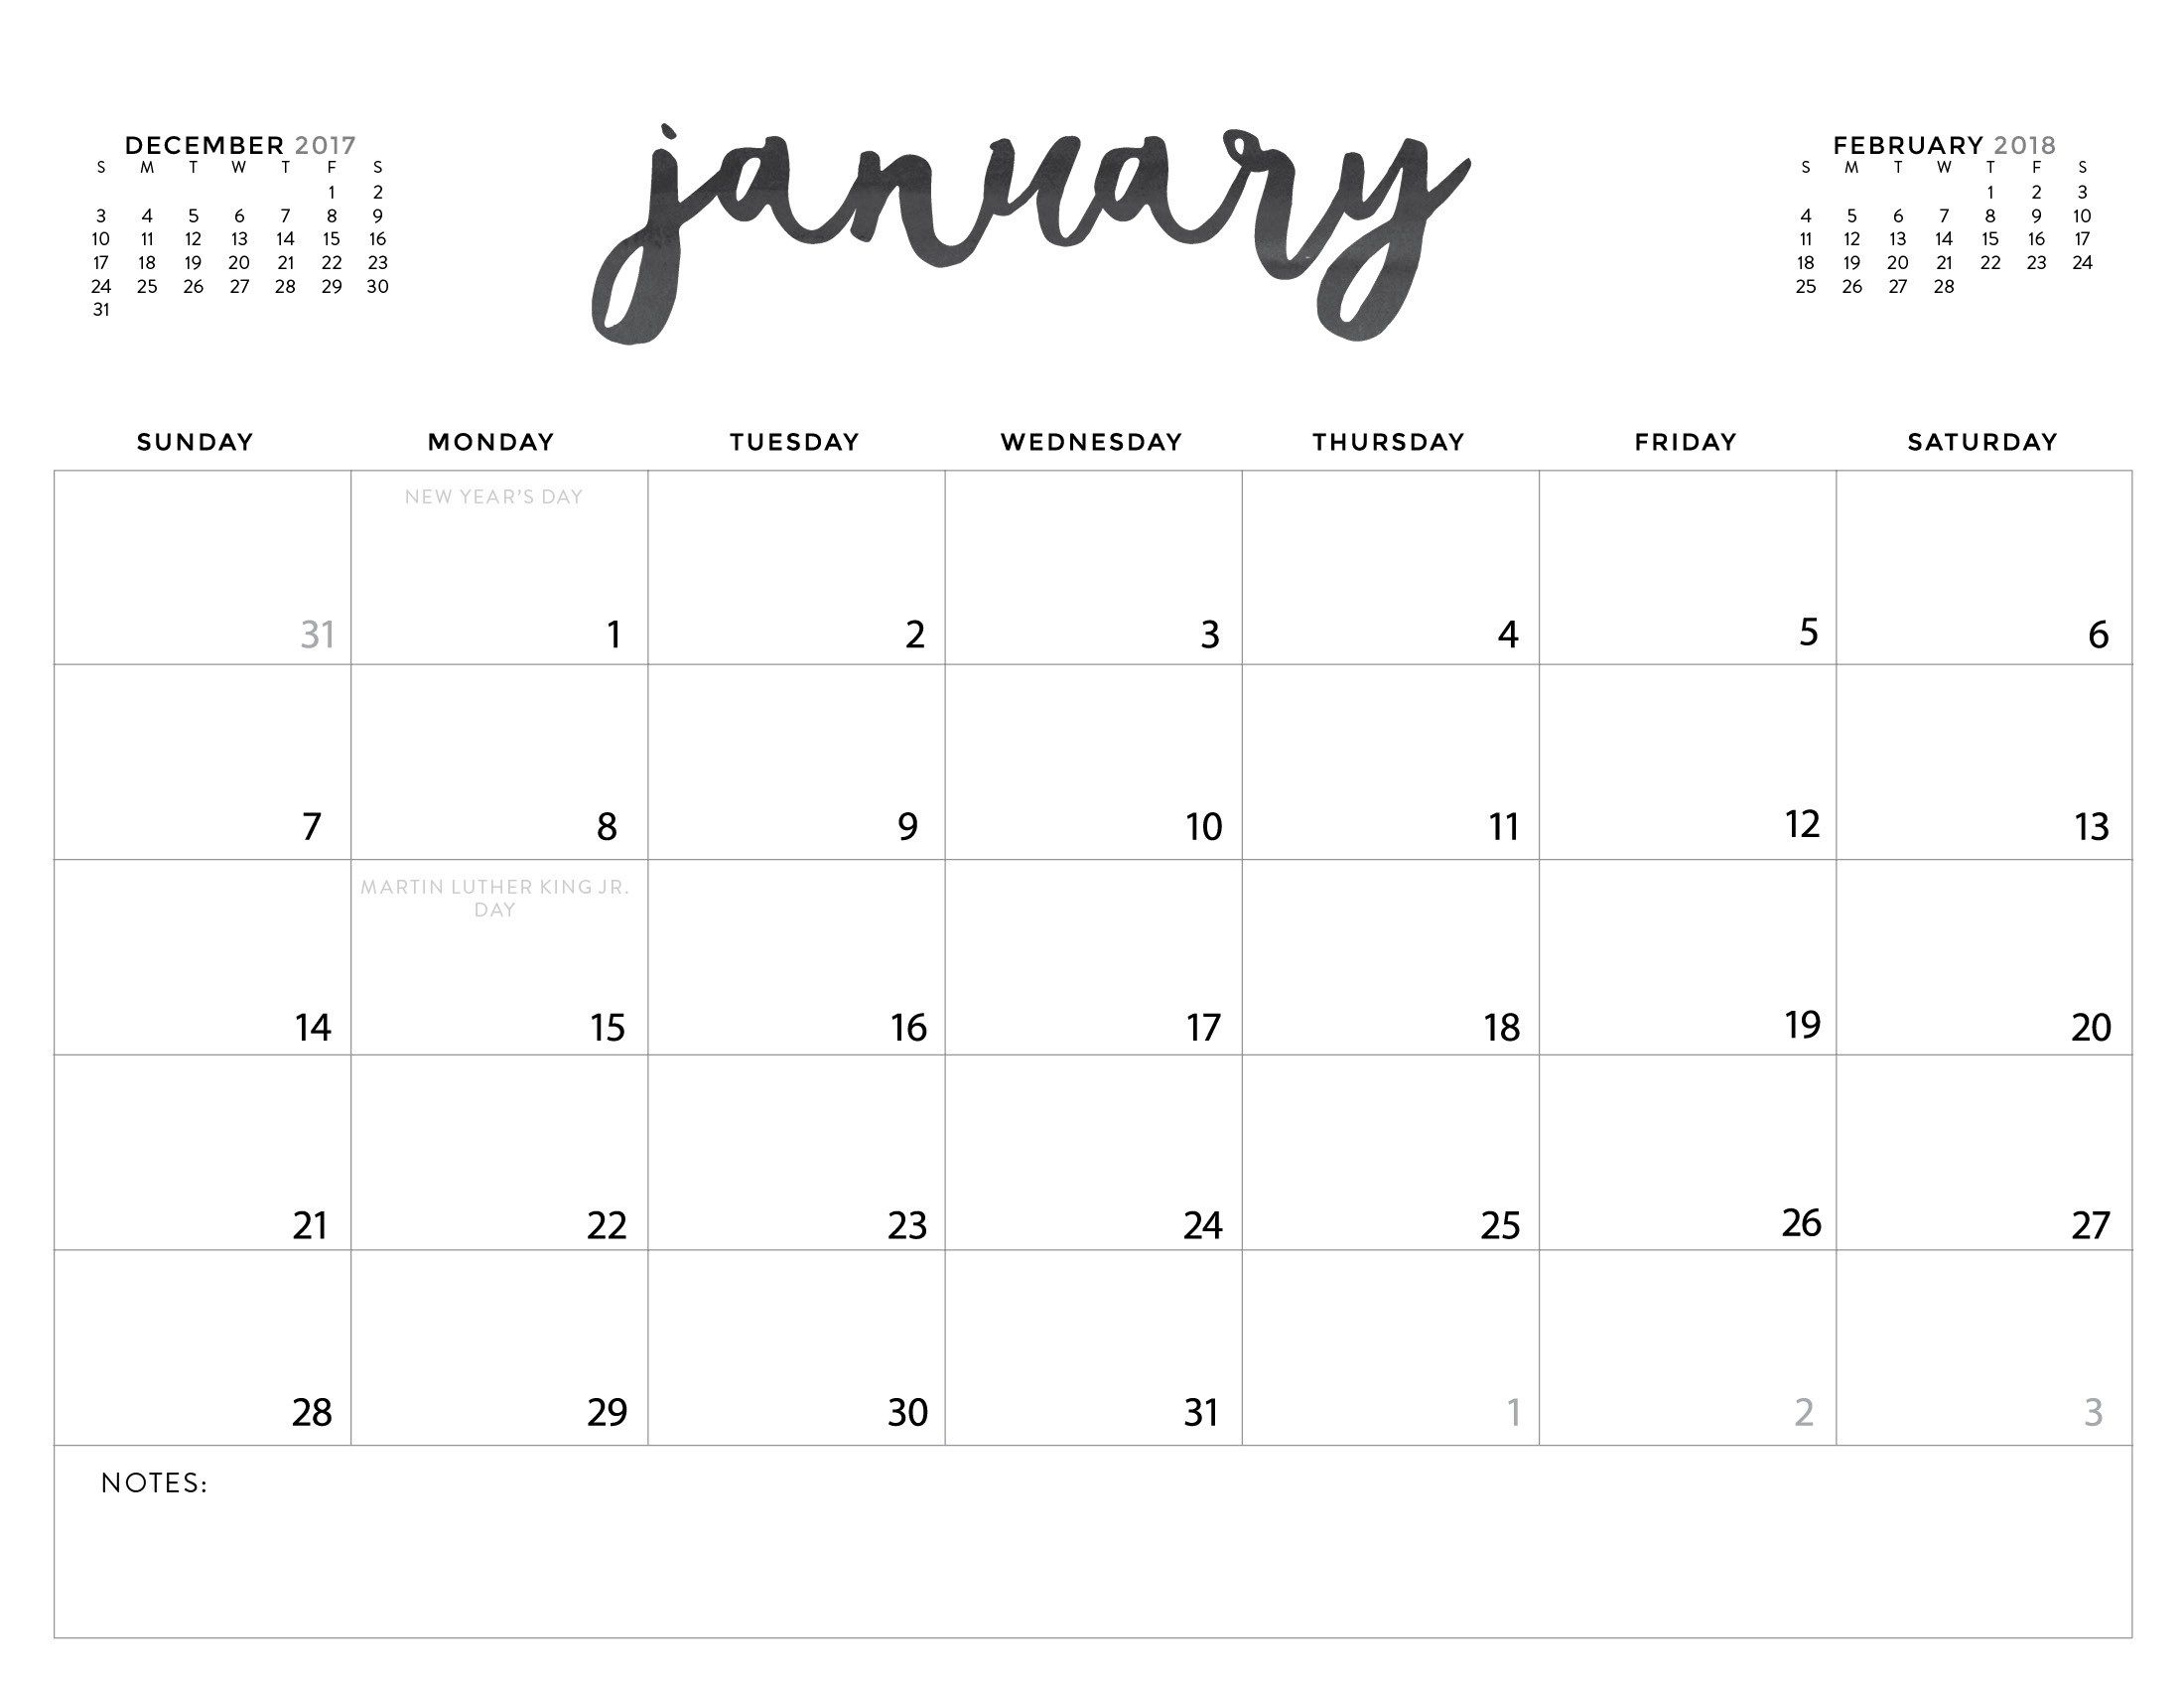 Download Your Free 2018 Printable Calendars Today! There Are 28 - Free Printable Ruler